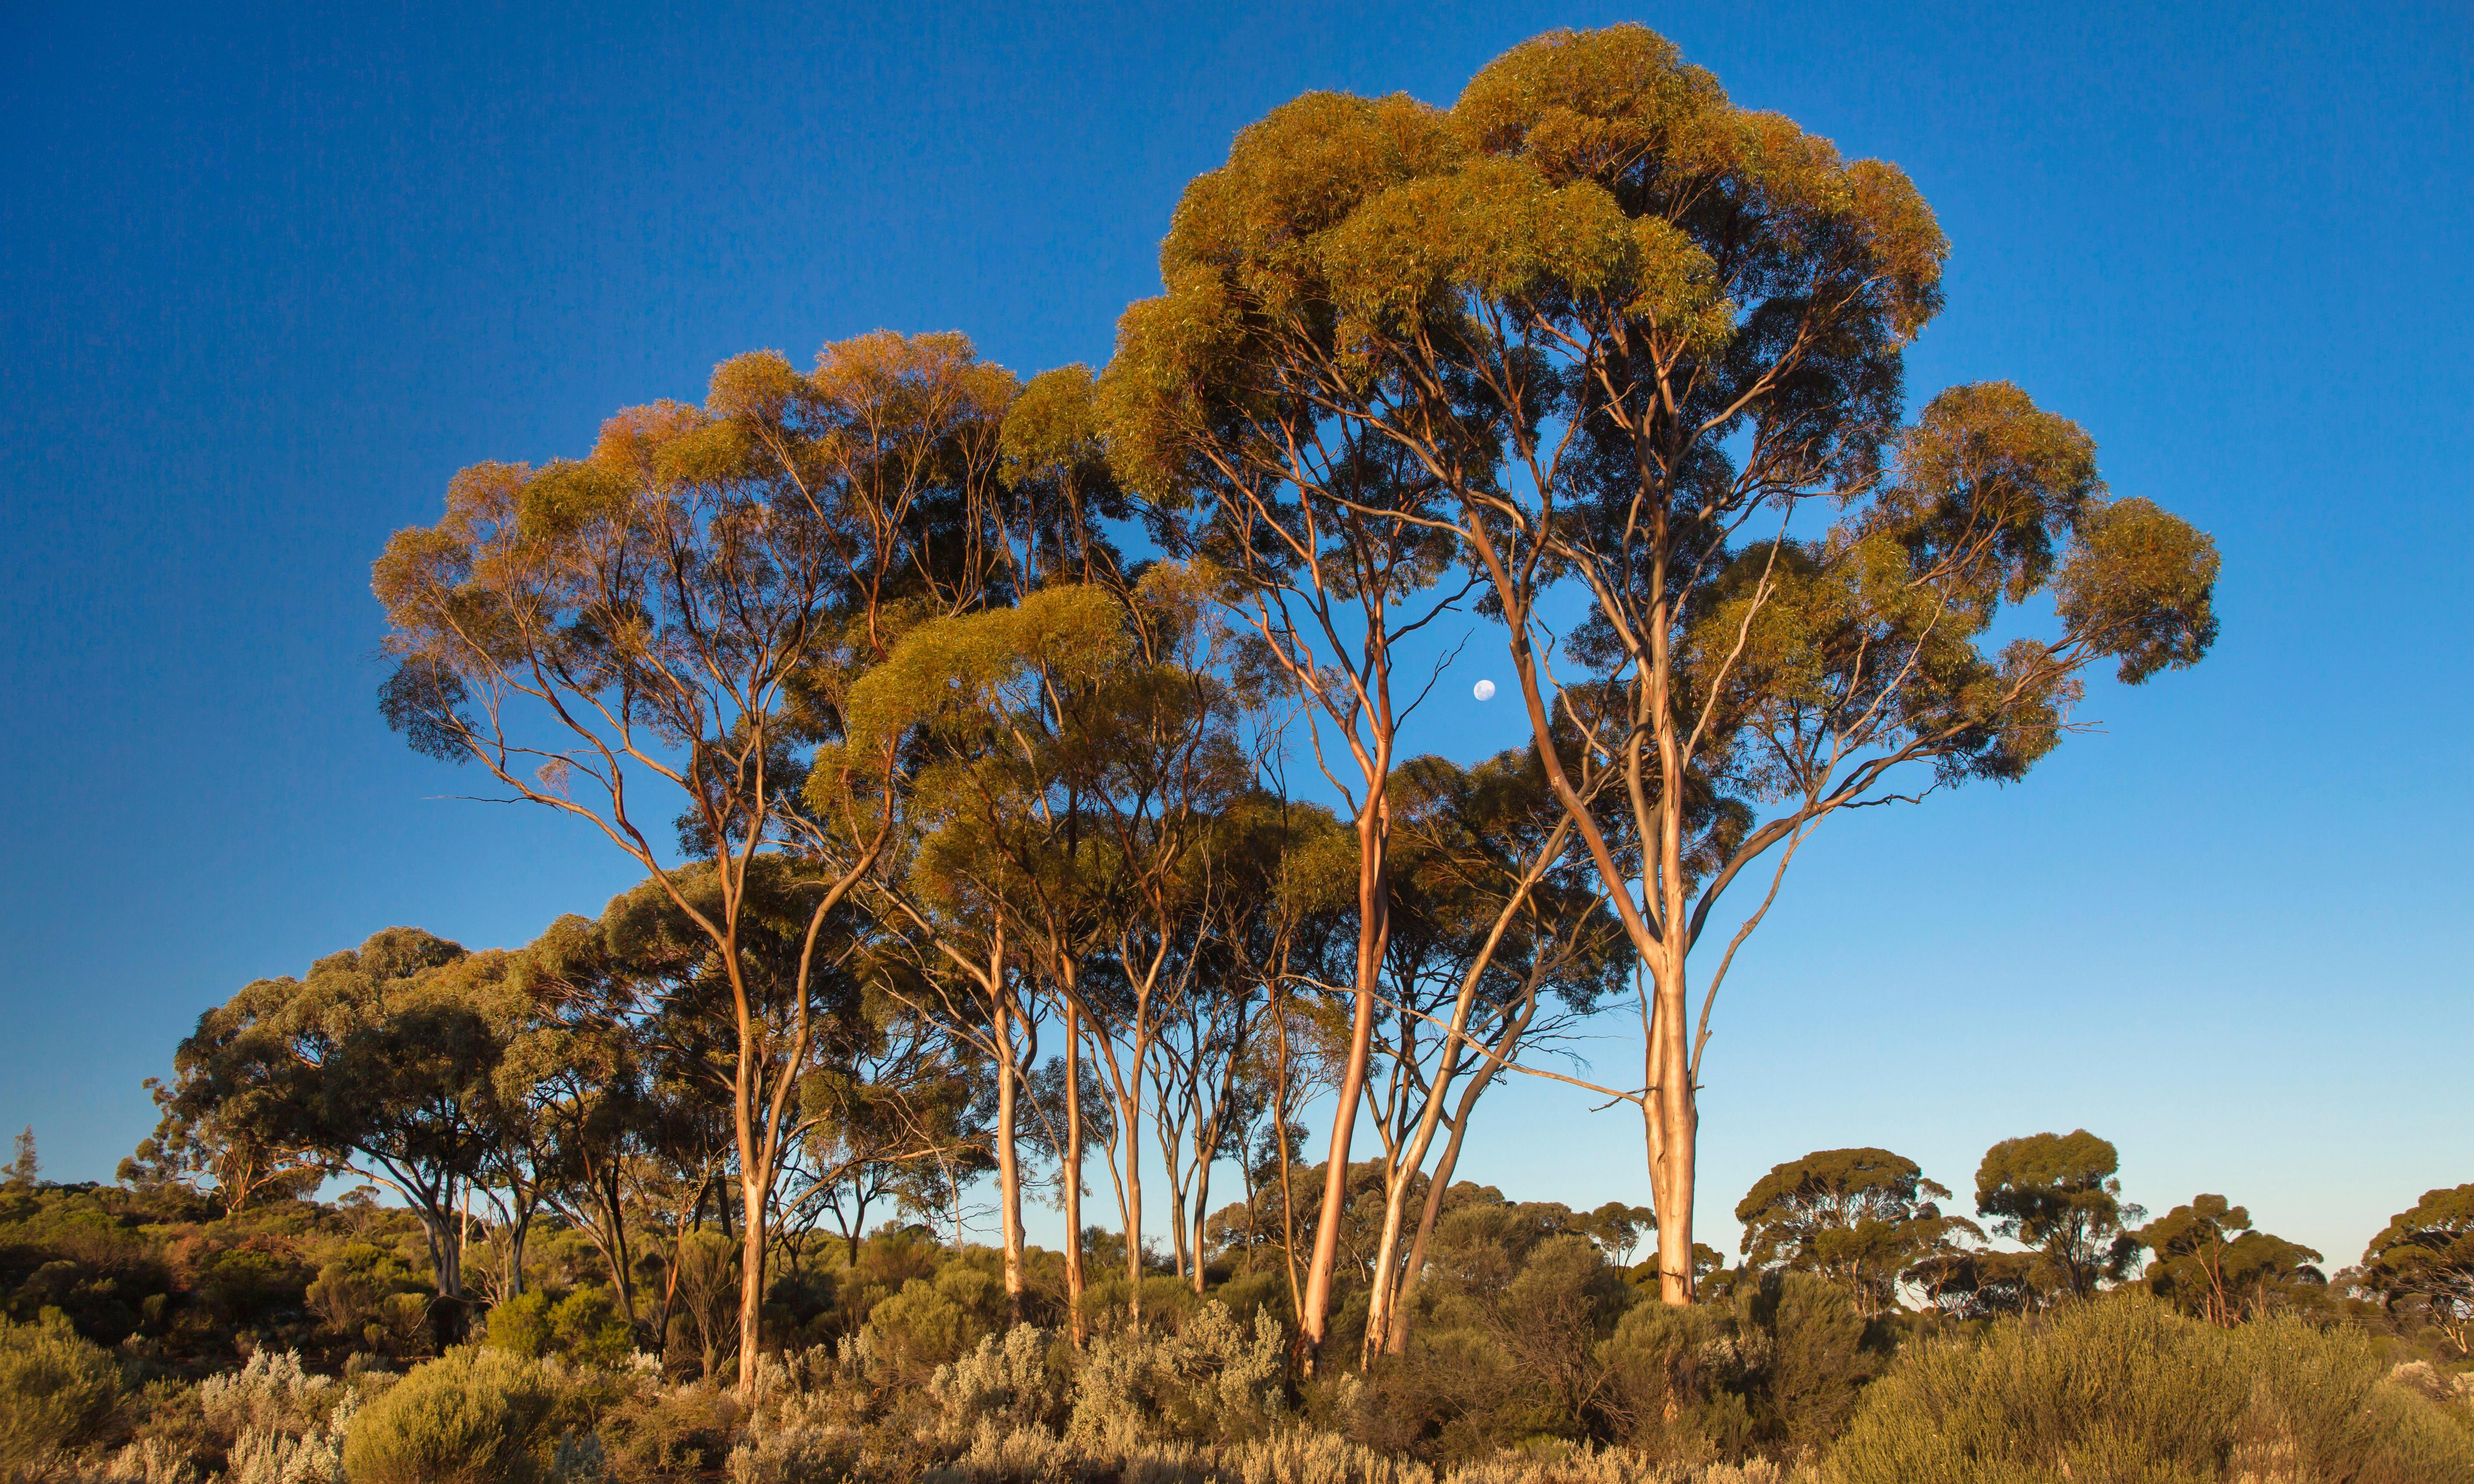 'They define the continent': nearly 150 eucalypt species recommended for threatened list